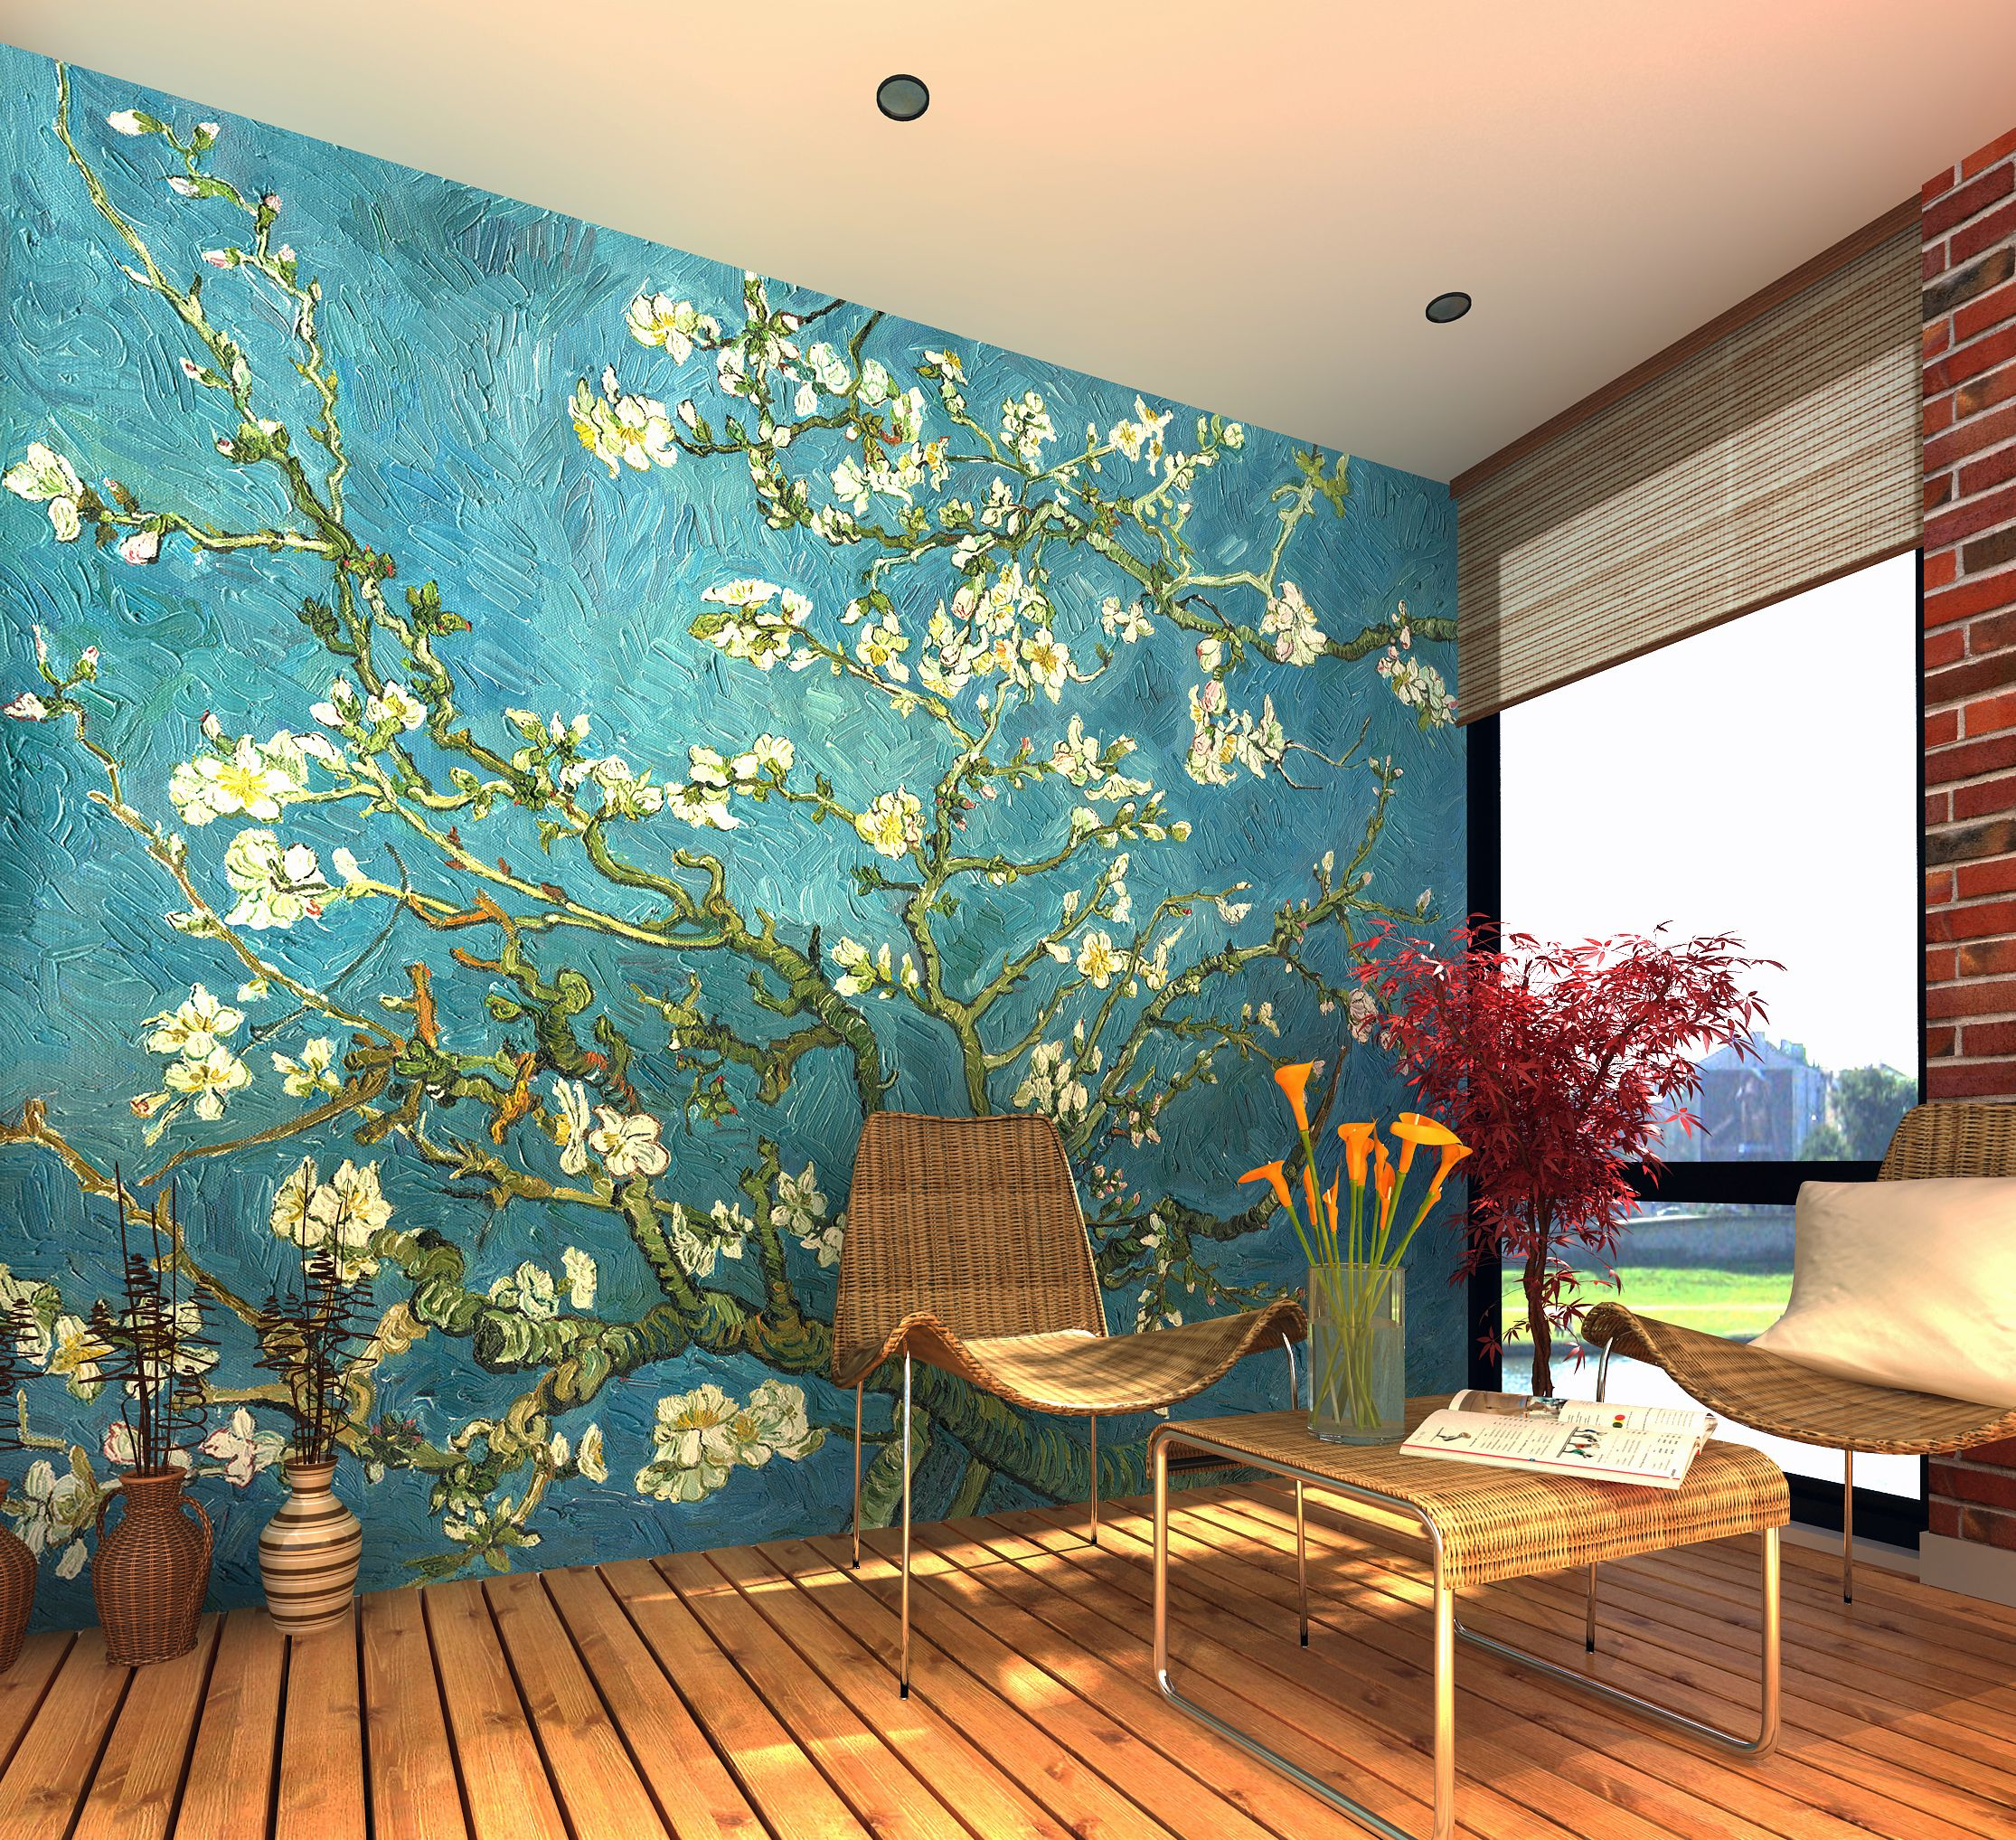 Van gogh almond blossom wall mural wallpaper for Home wallpaper 0